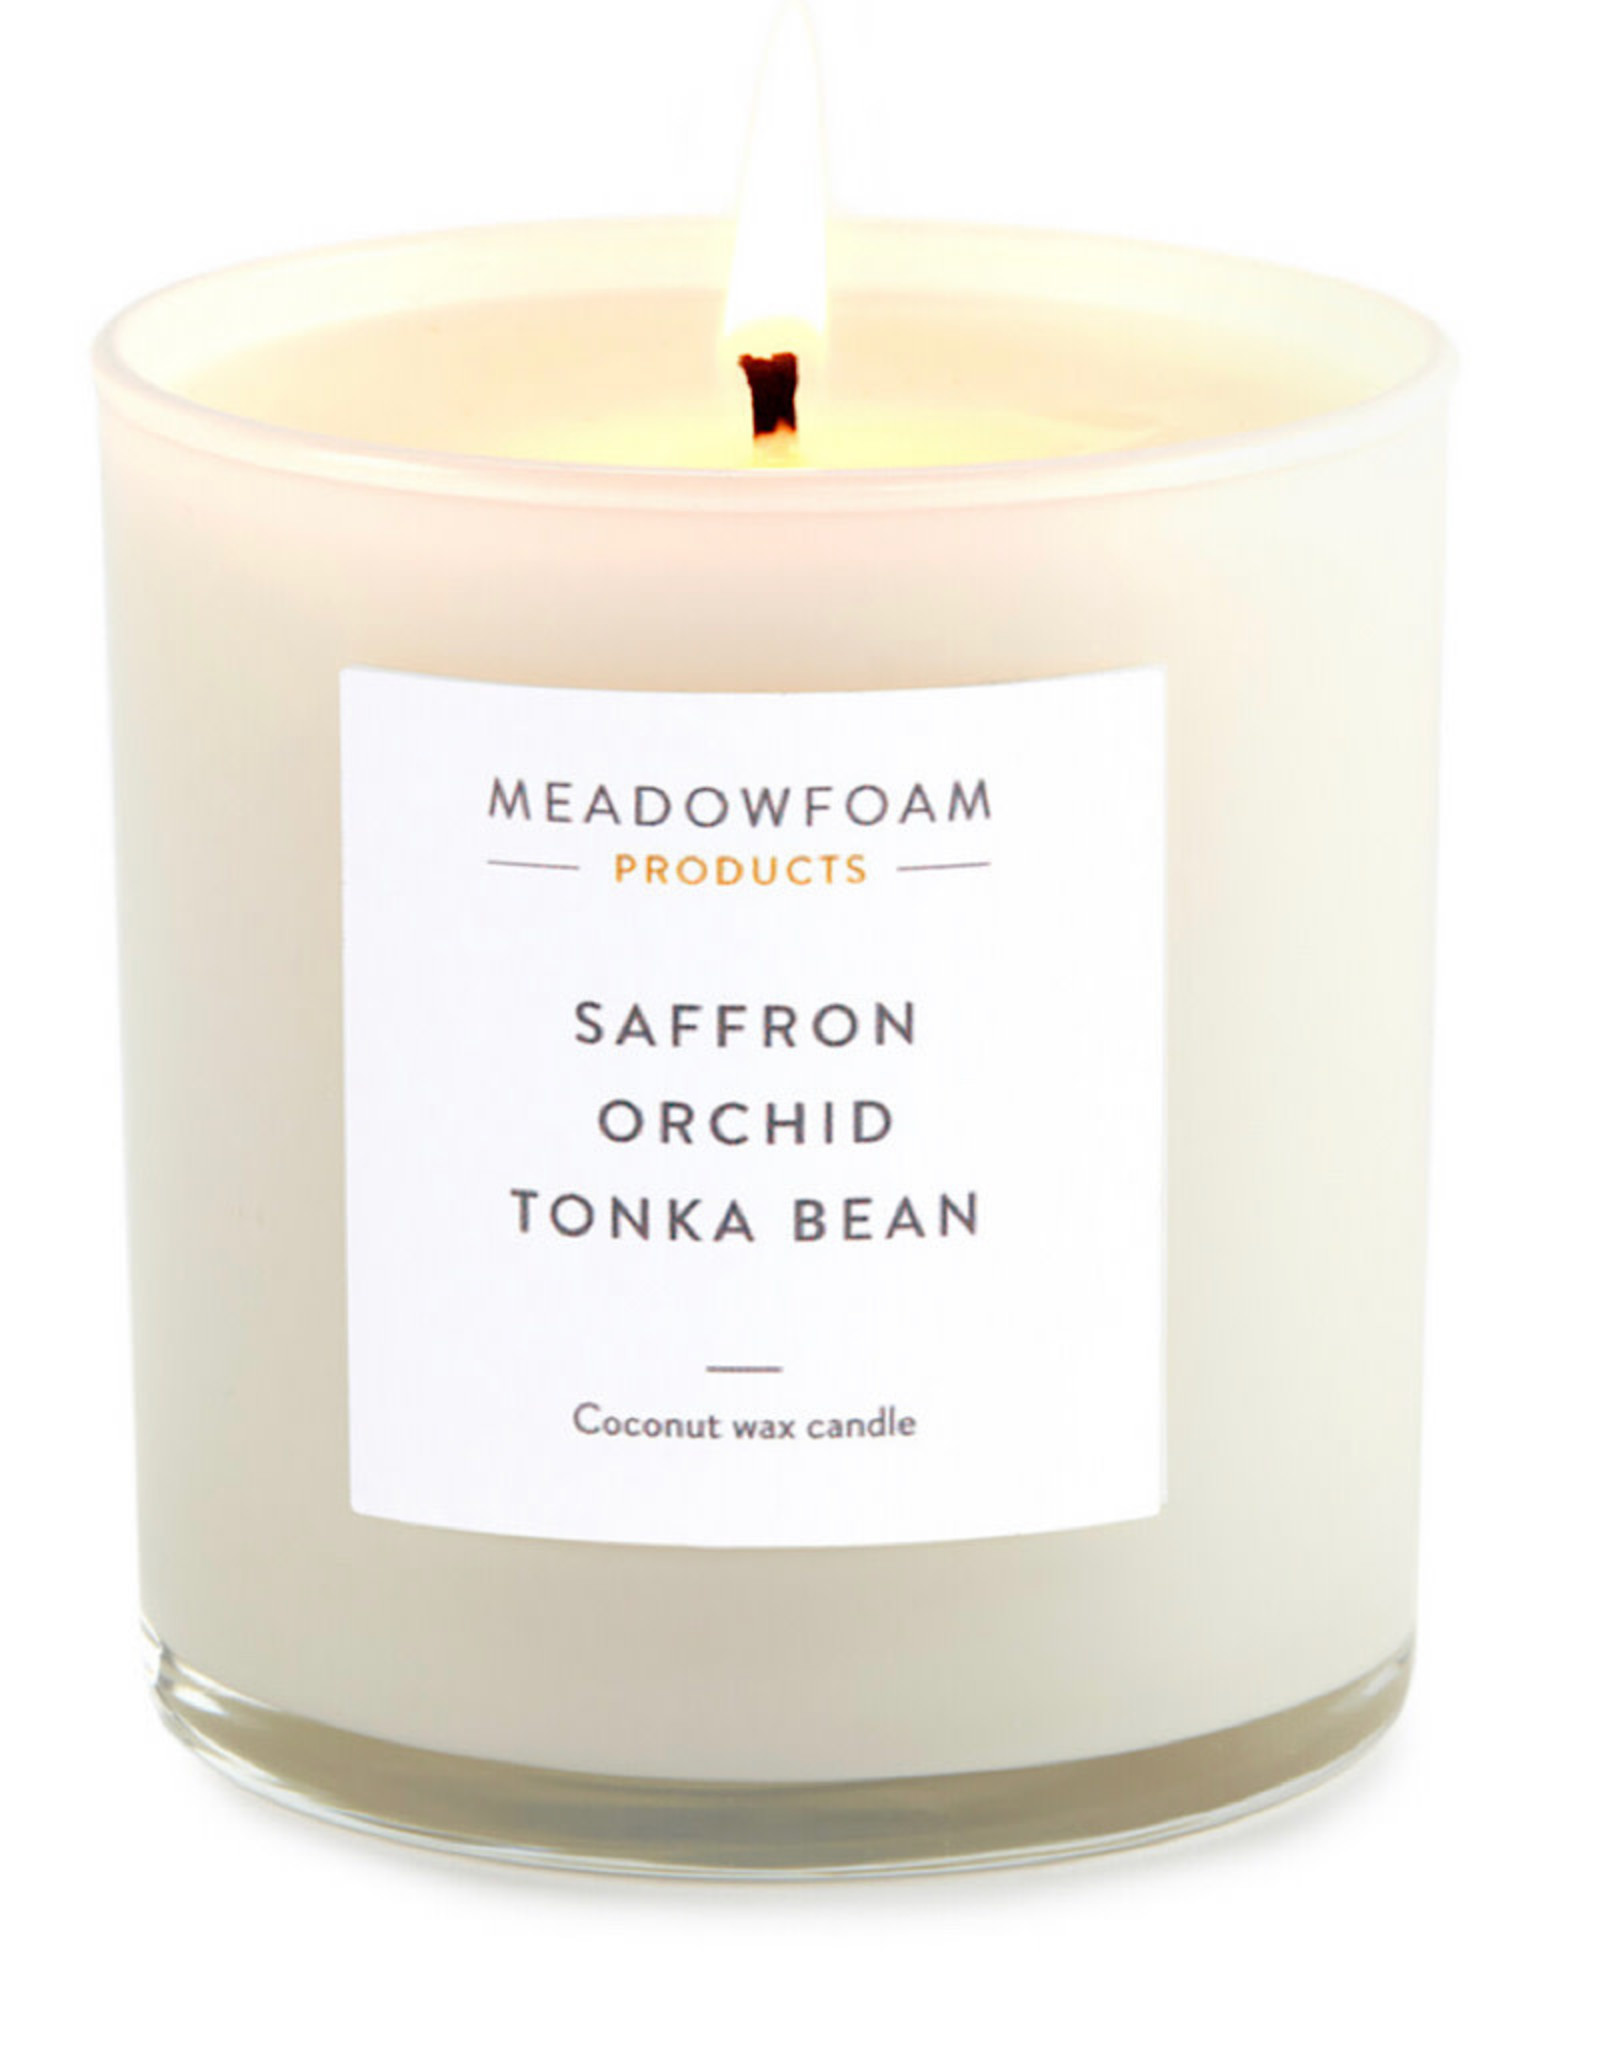 11oz Candle COTTON Wick in Cocktail Glass